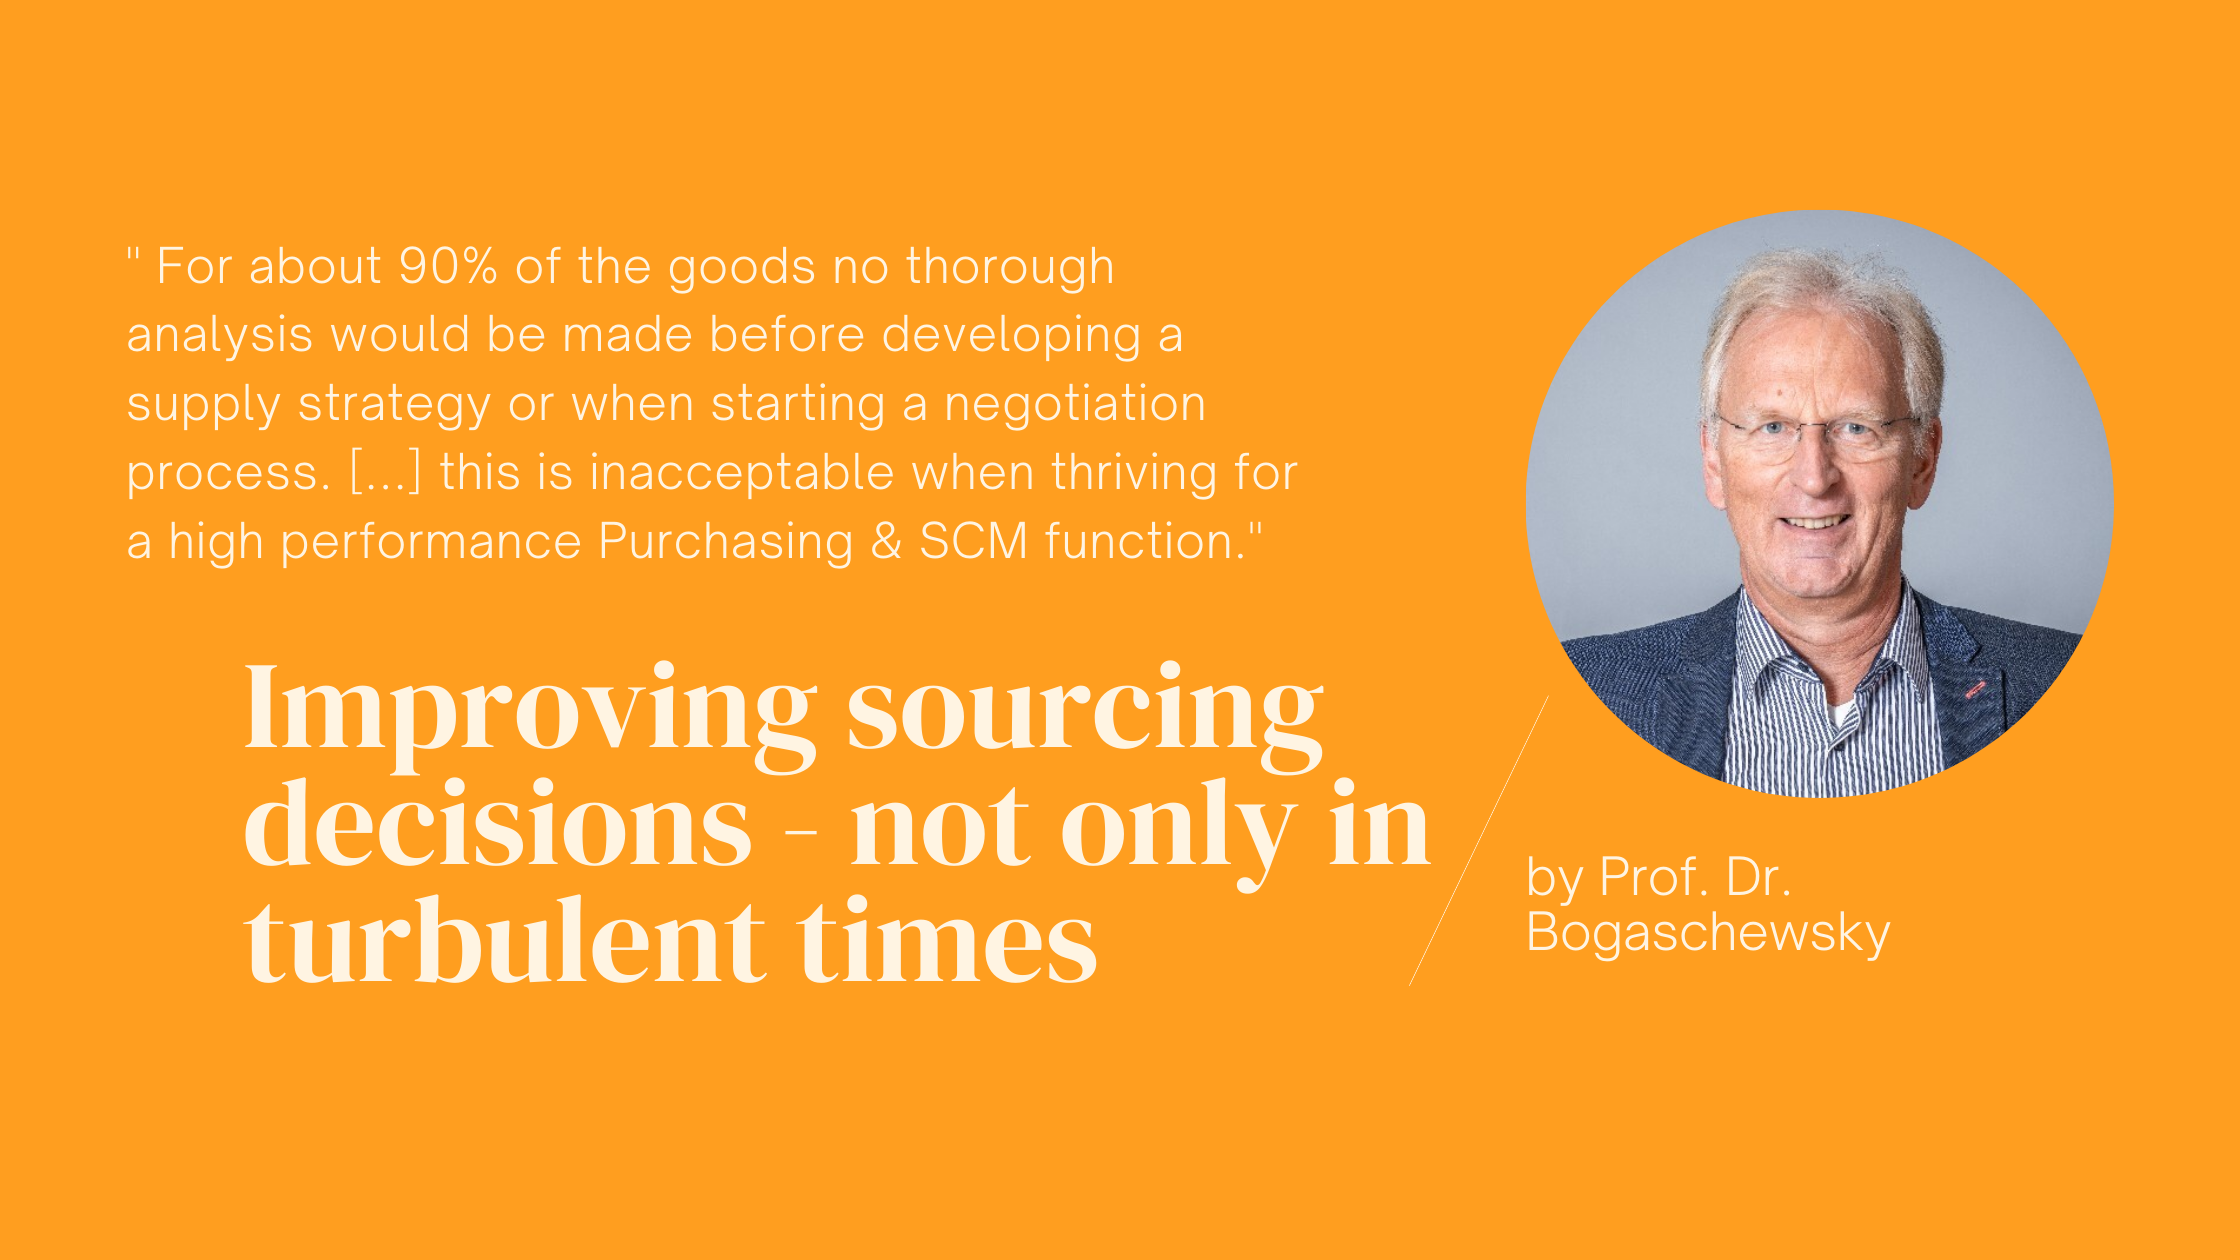 Improving sourcing decisions- not only in turbulent times